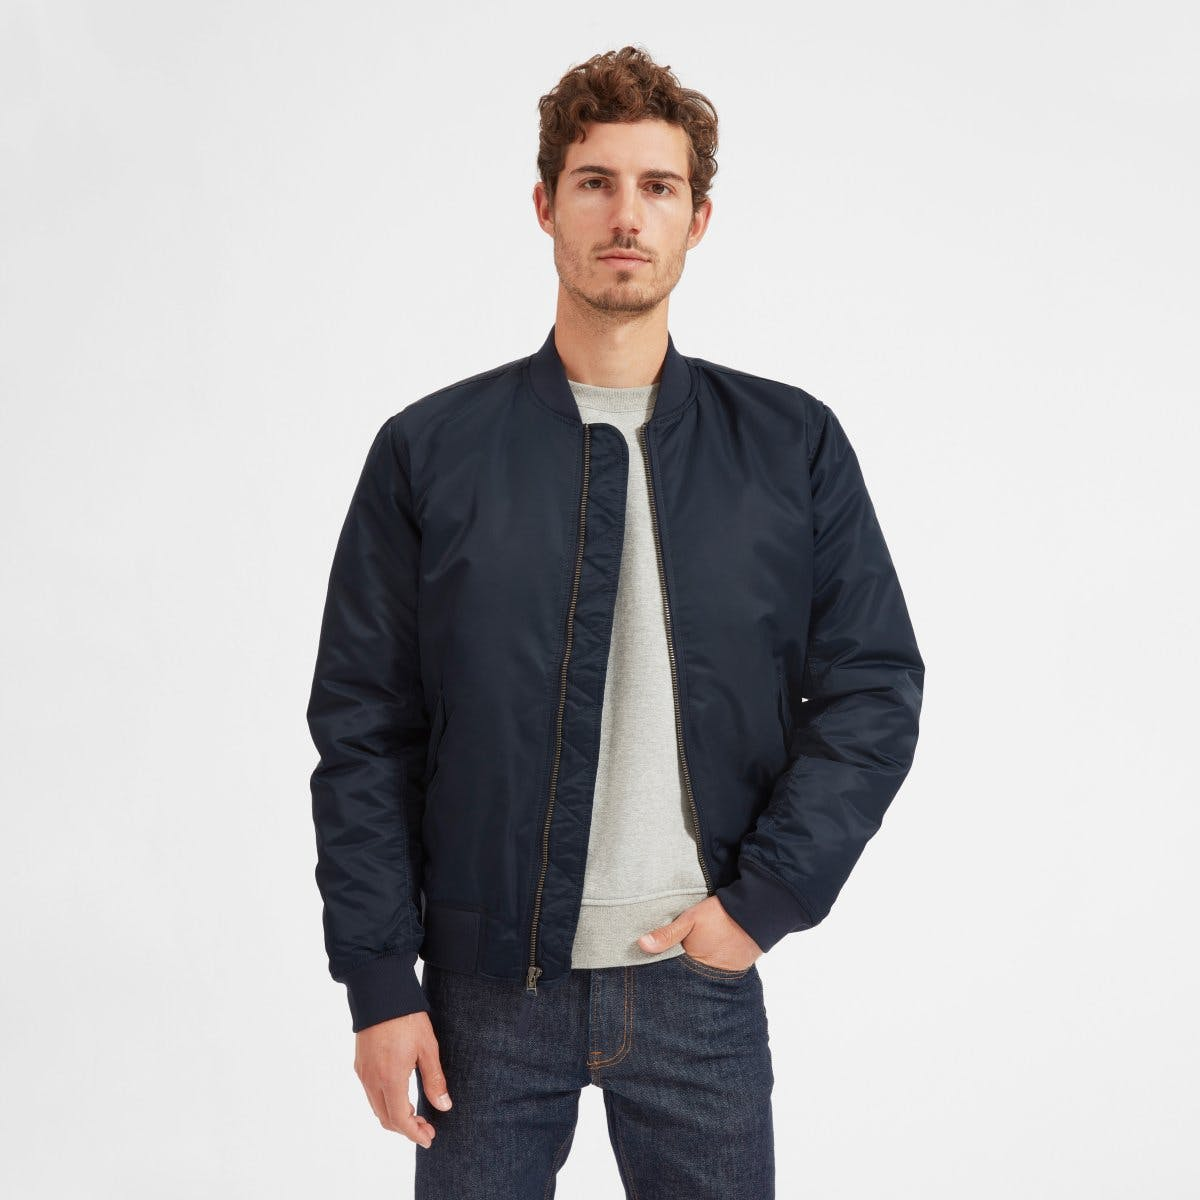 everlane, everlane jacket, bomber jacket, nylon jacket, flight jacket, navy jacket, denimblog, denim blog